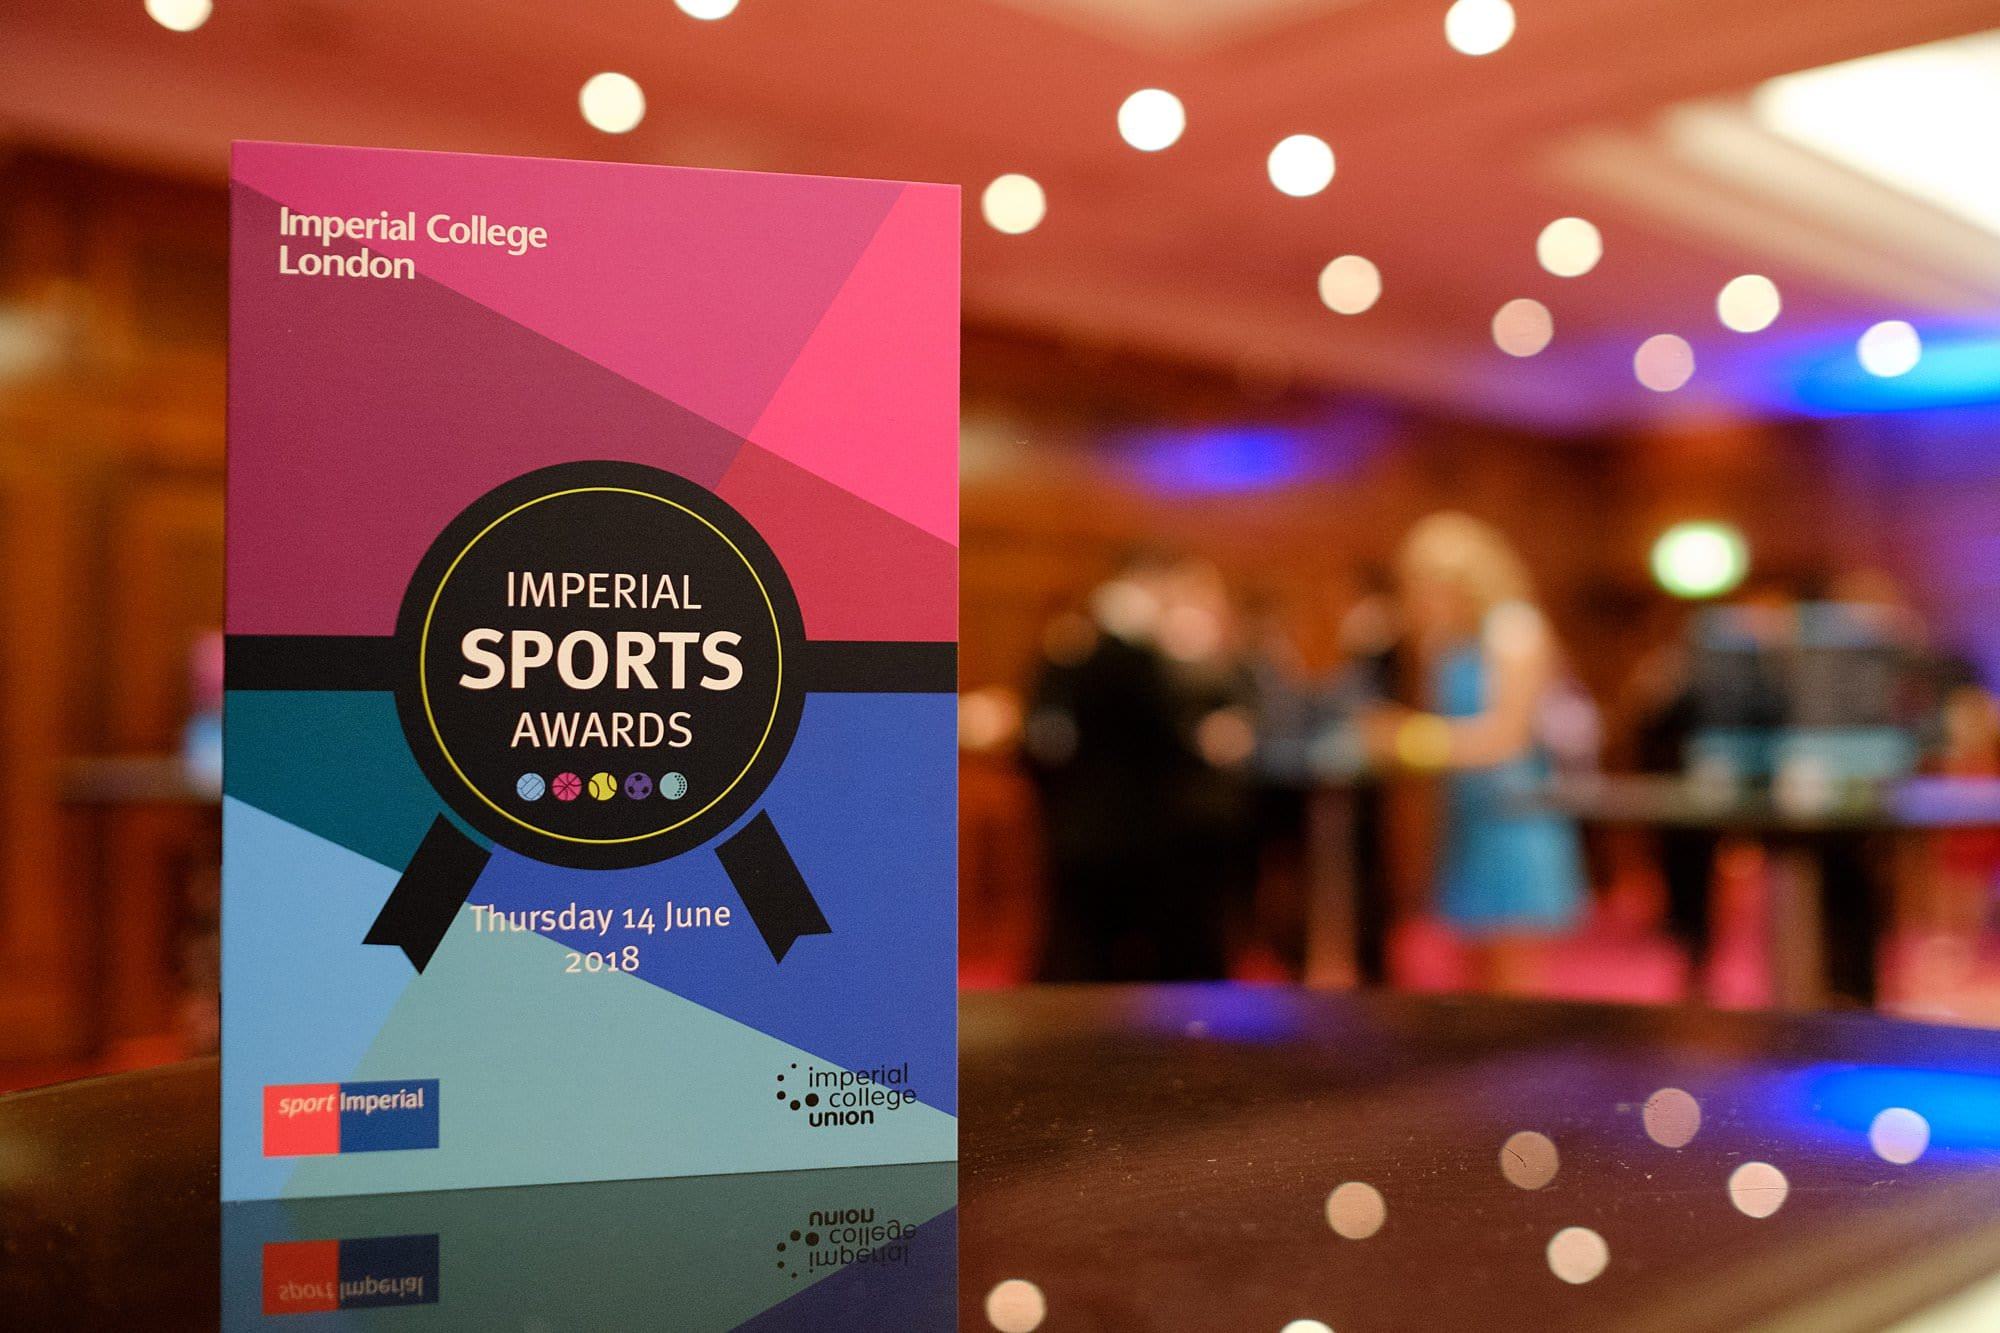 london event photographer ICL copthorne tara 003 - Imperial College Sports Awards 2018